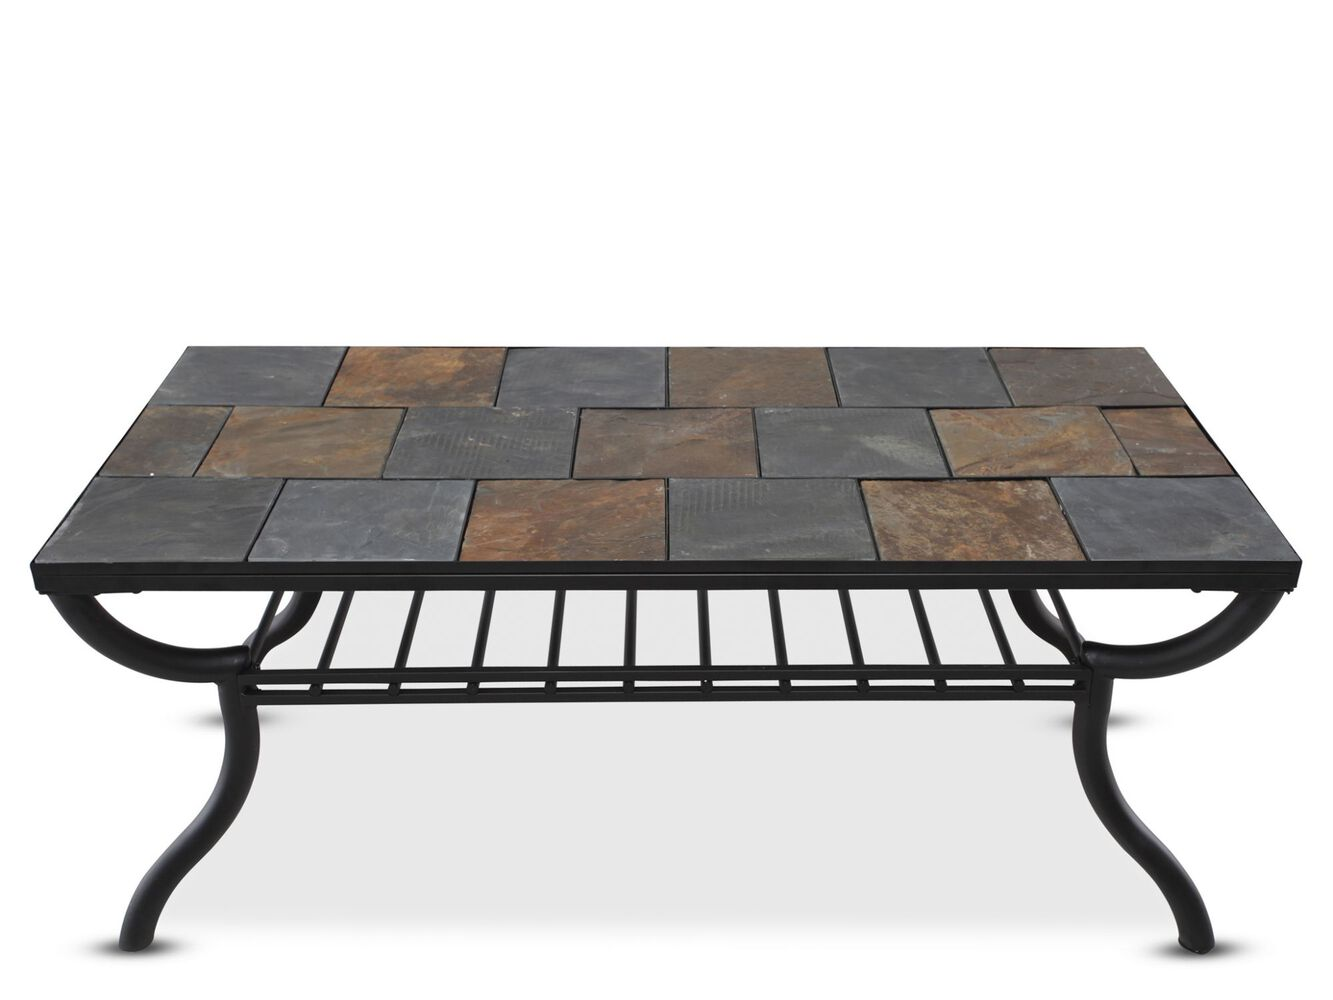 Tile top rectangular cocktail table in gunmetal mathis brothers tile top rectangular cocktail tablenbspin gunmetal geotapseo Choice Image